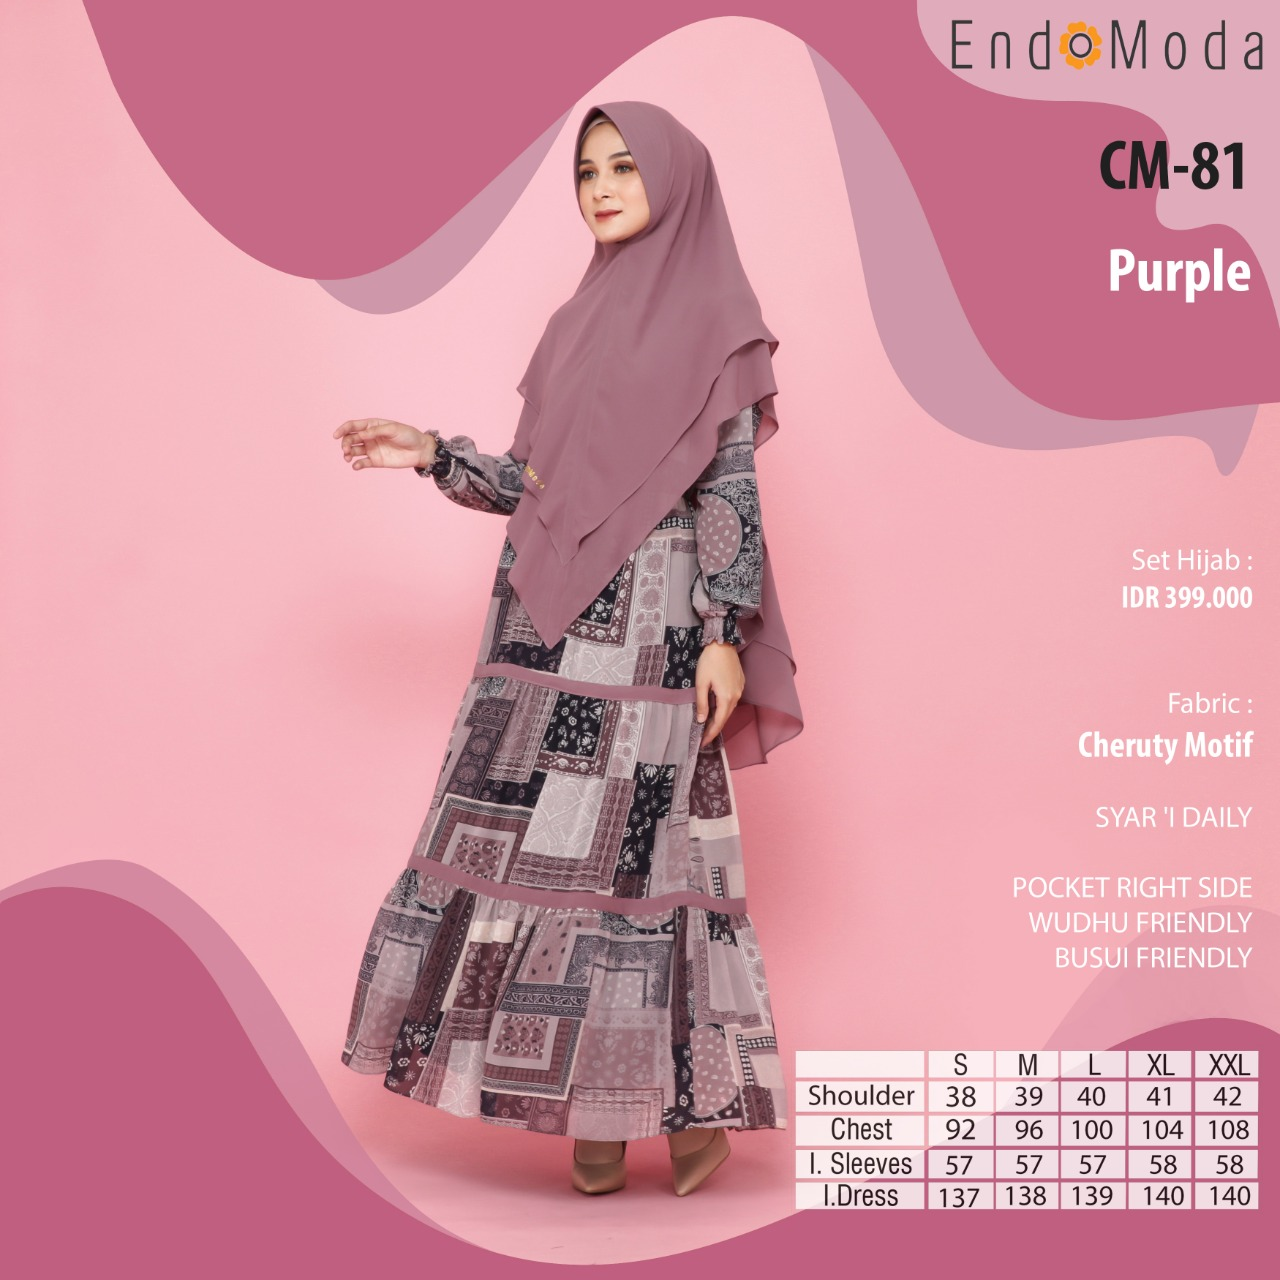 Gamis Endomoda CM 81 Purple